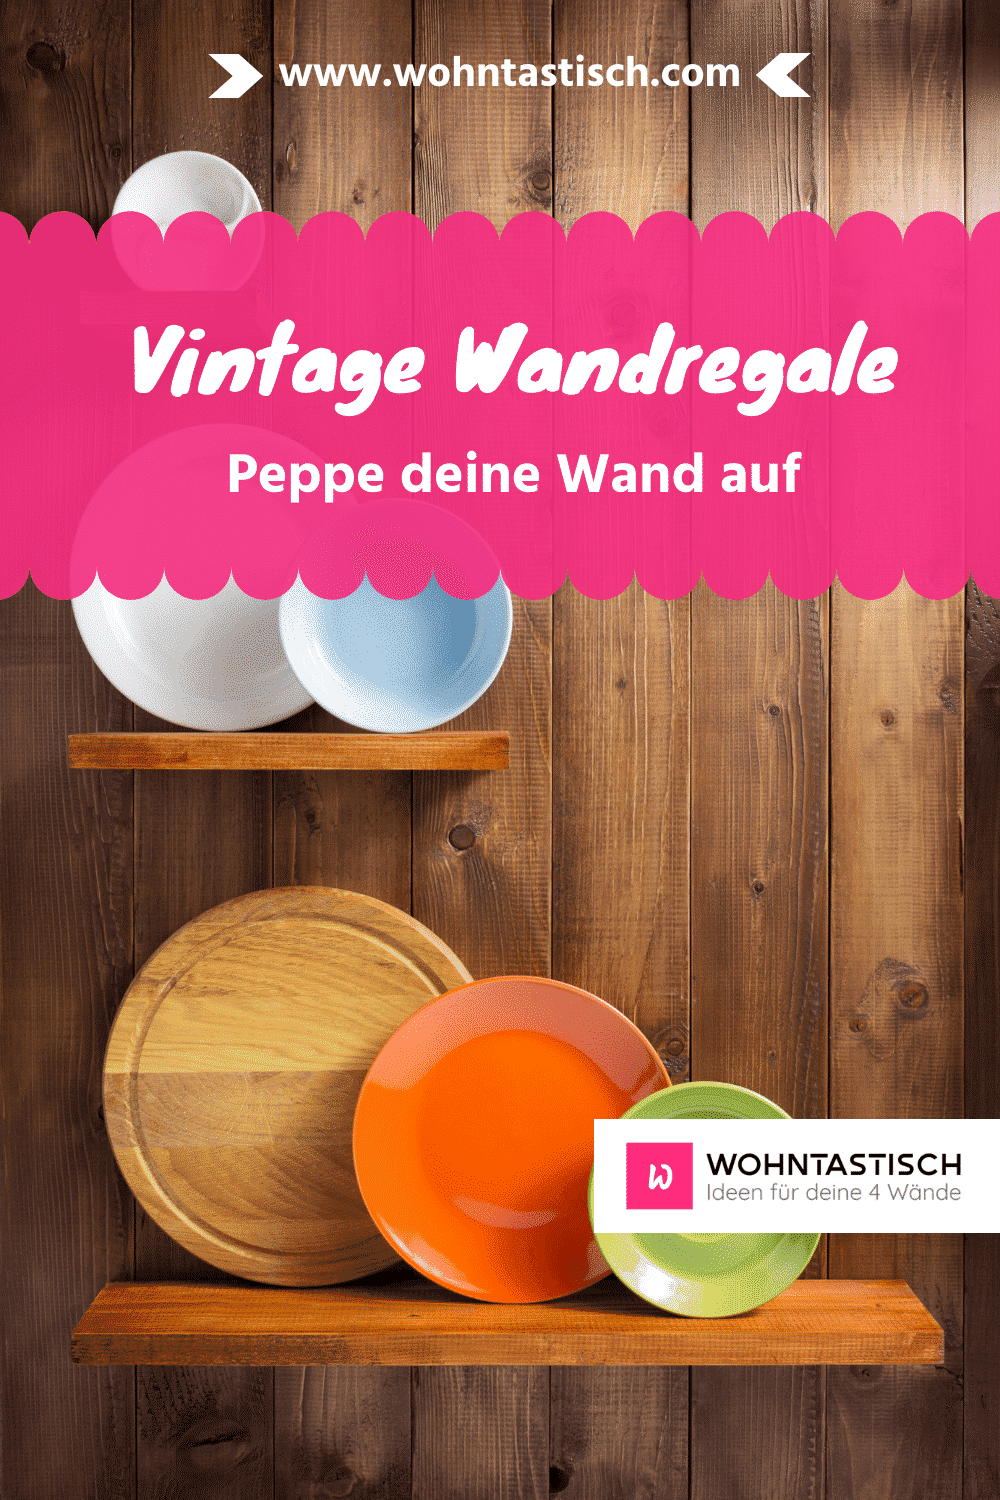 Vintage Wandregal